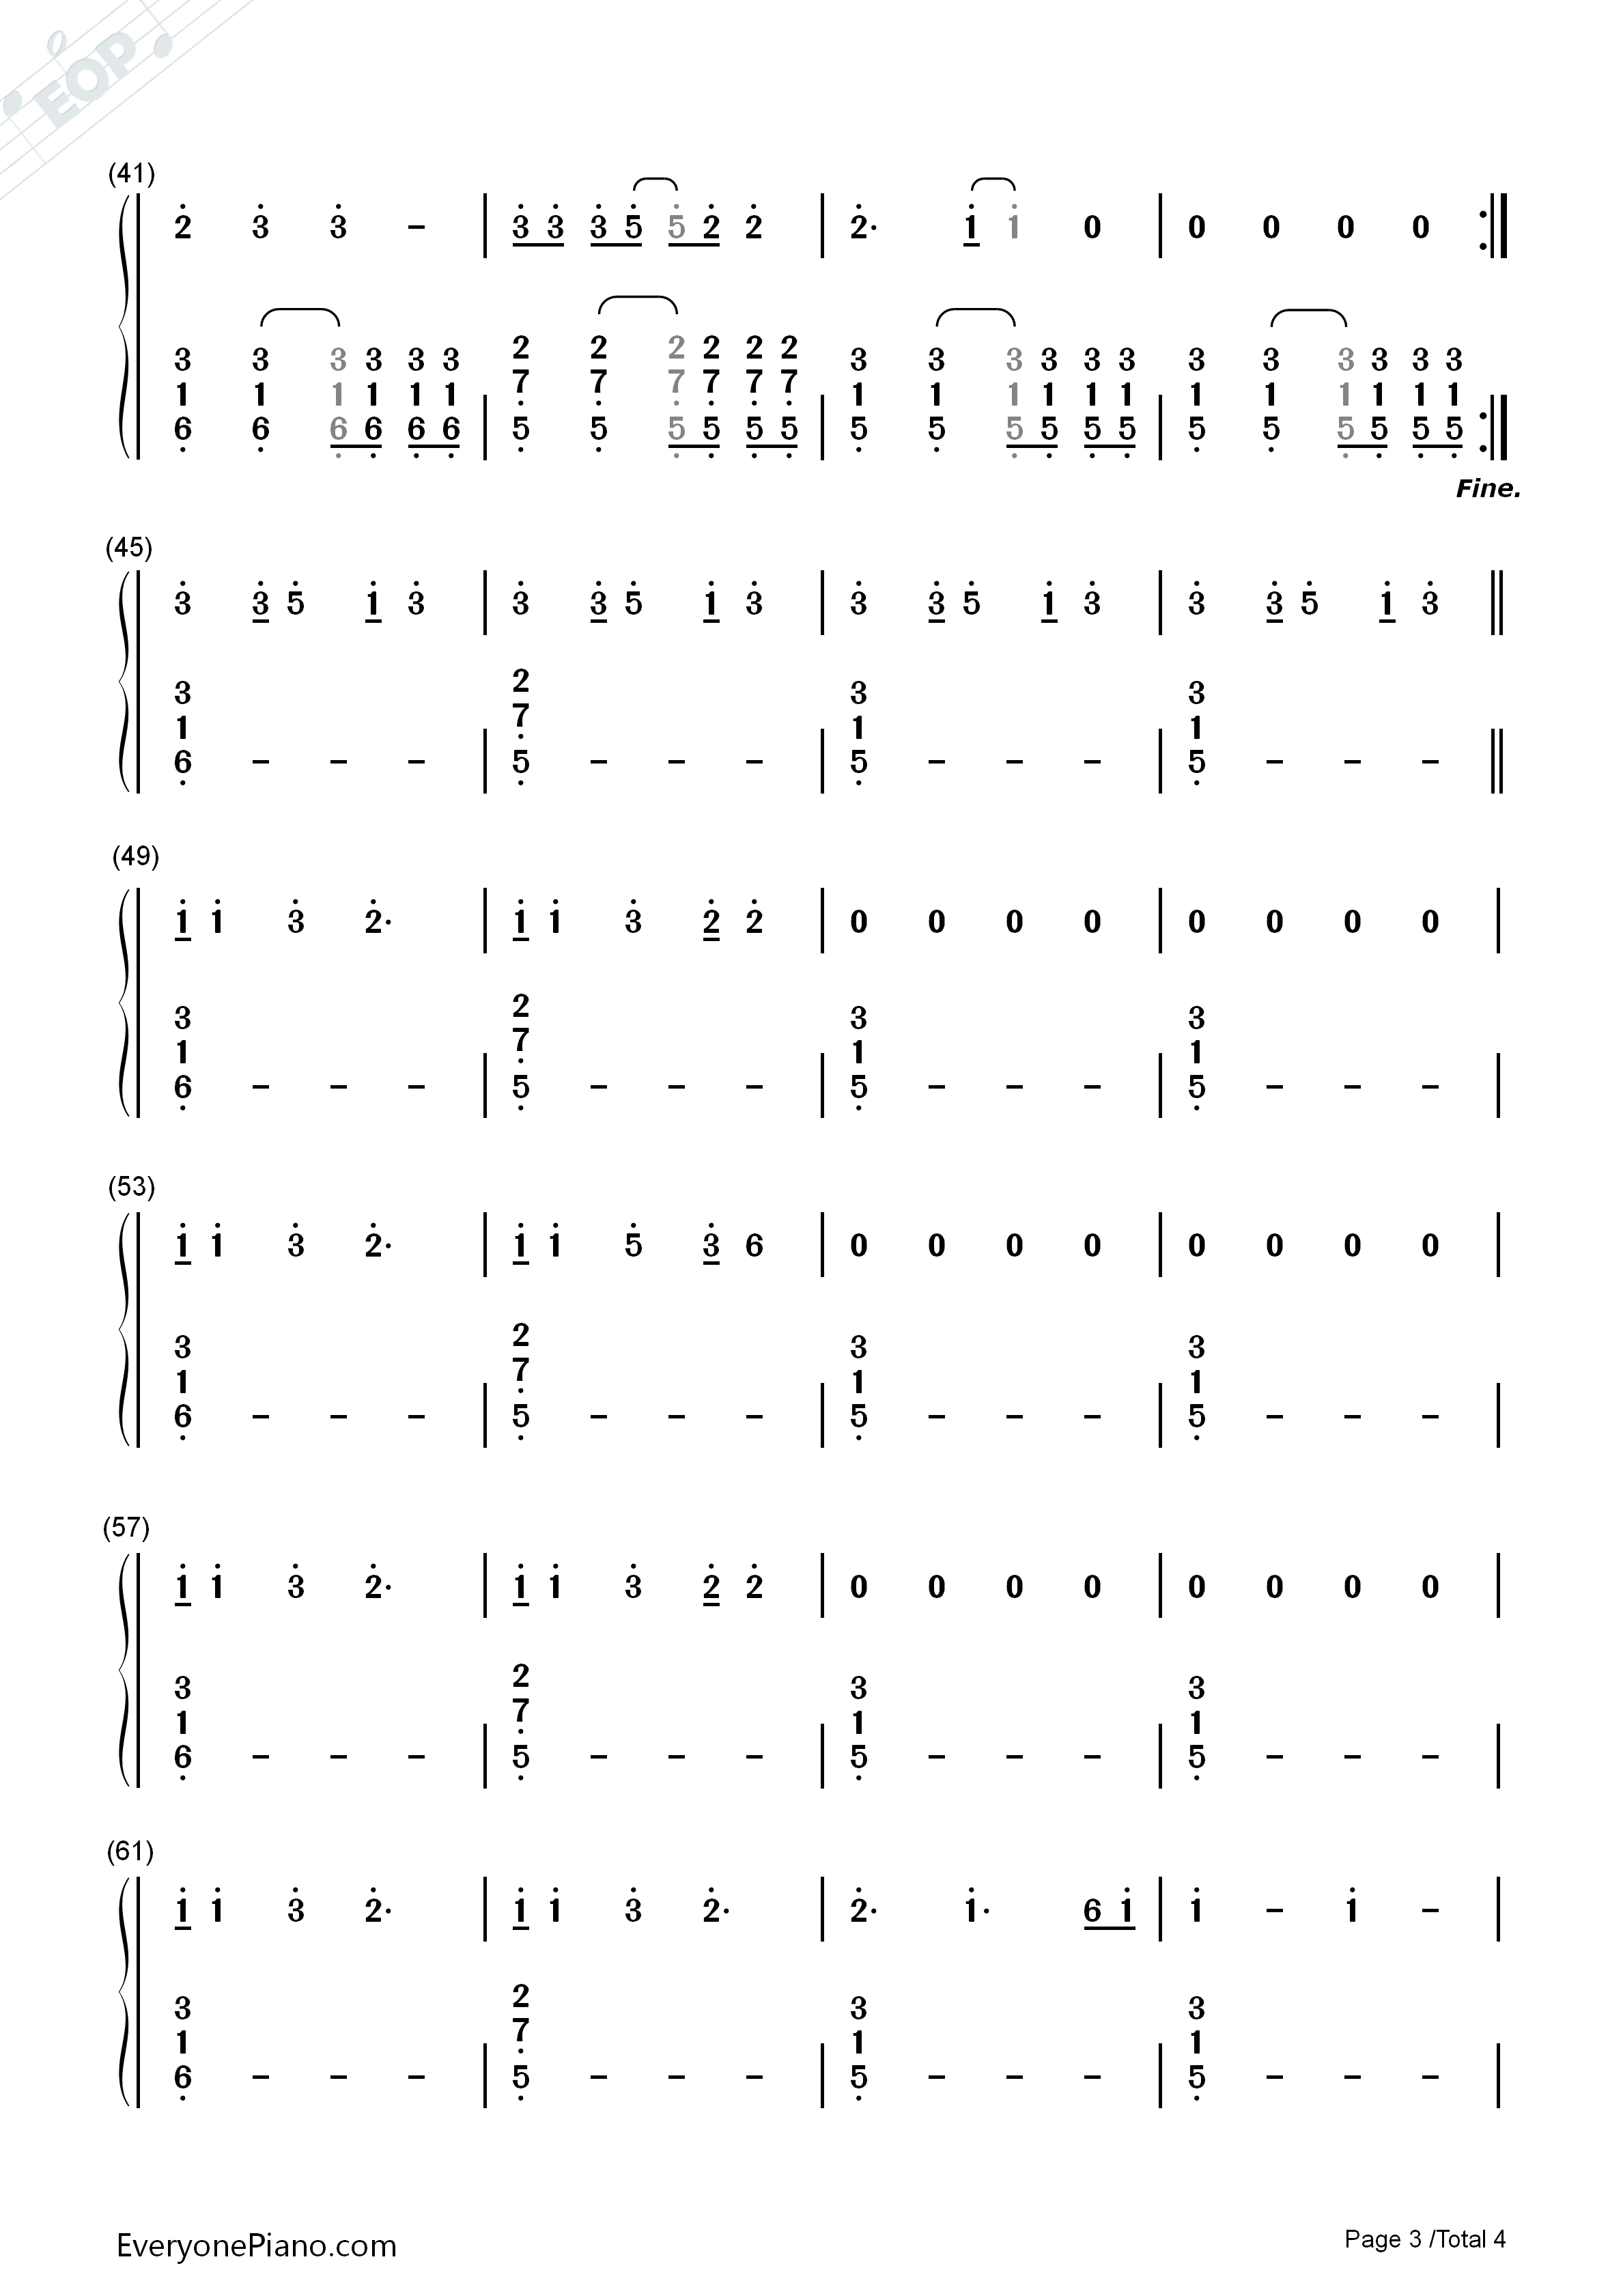 Riptide-Vance Joy Numbered Musical Notation Preview 3-Free Piano Sheet Music u0026 Piano Chords